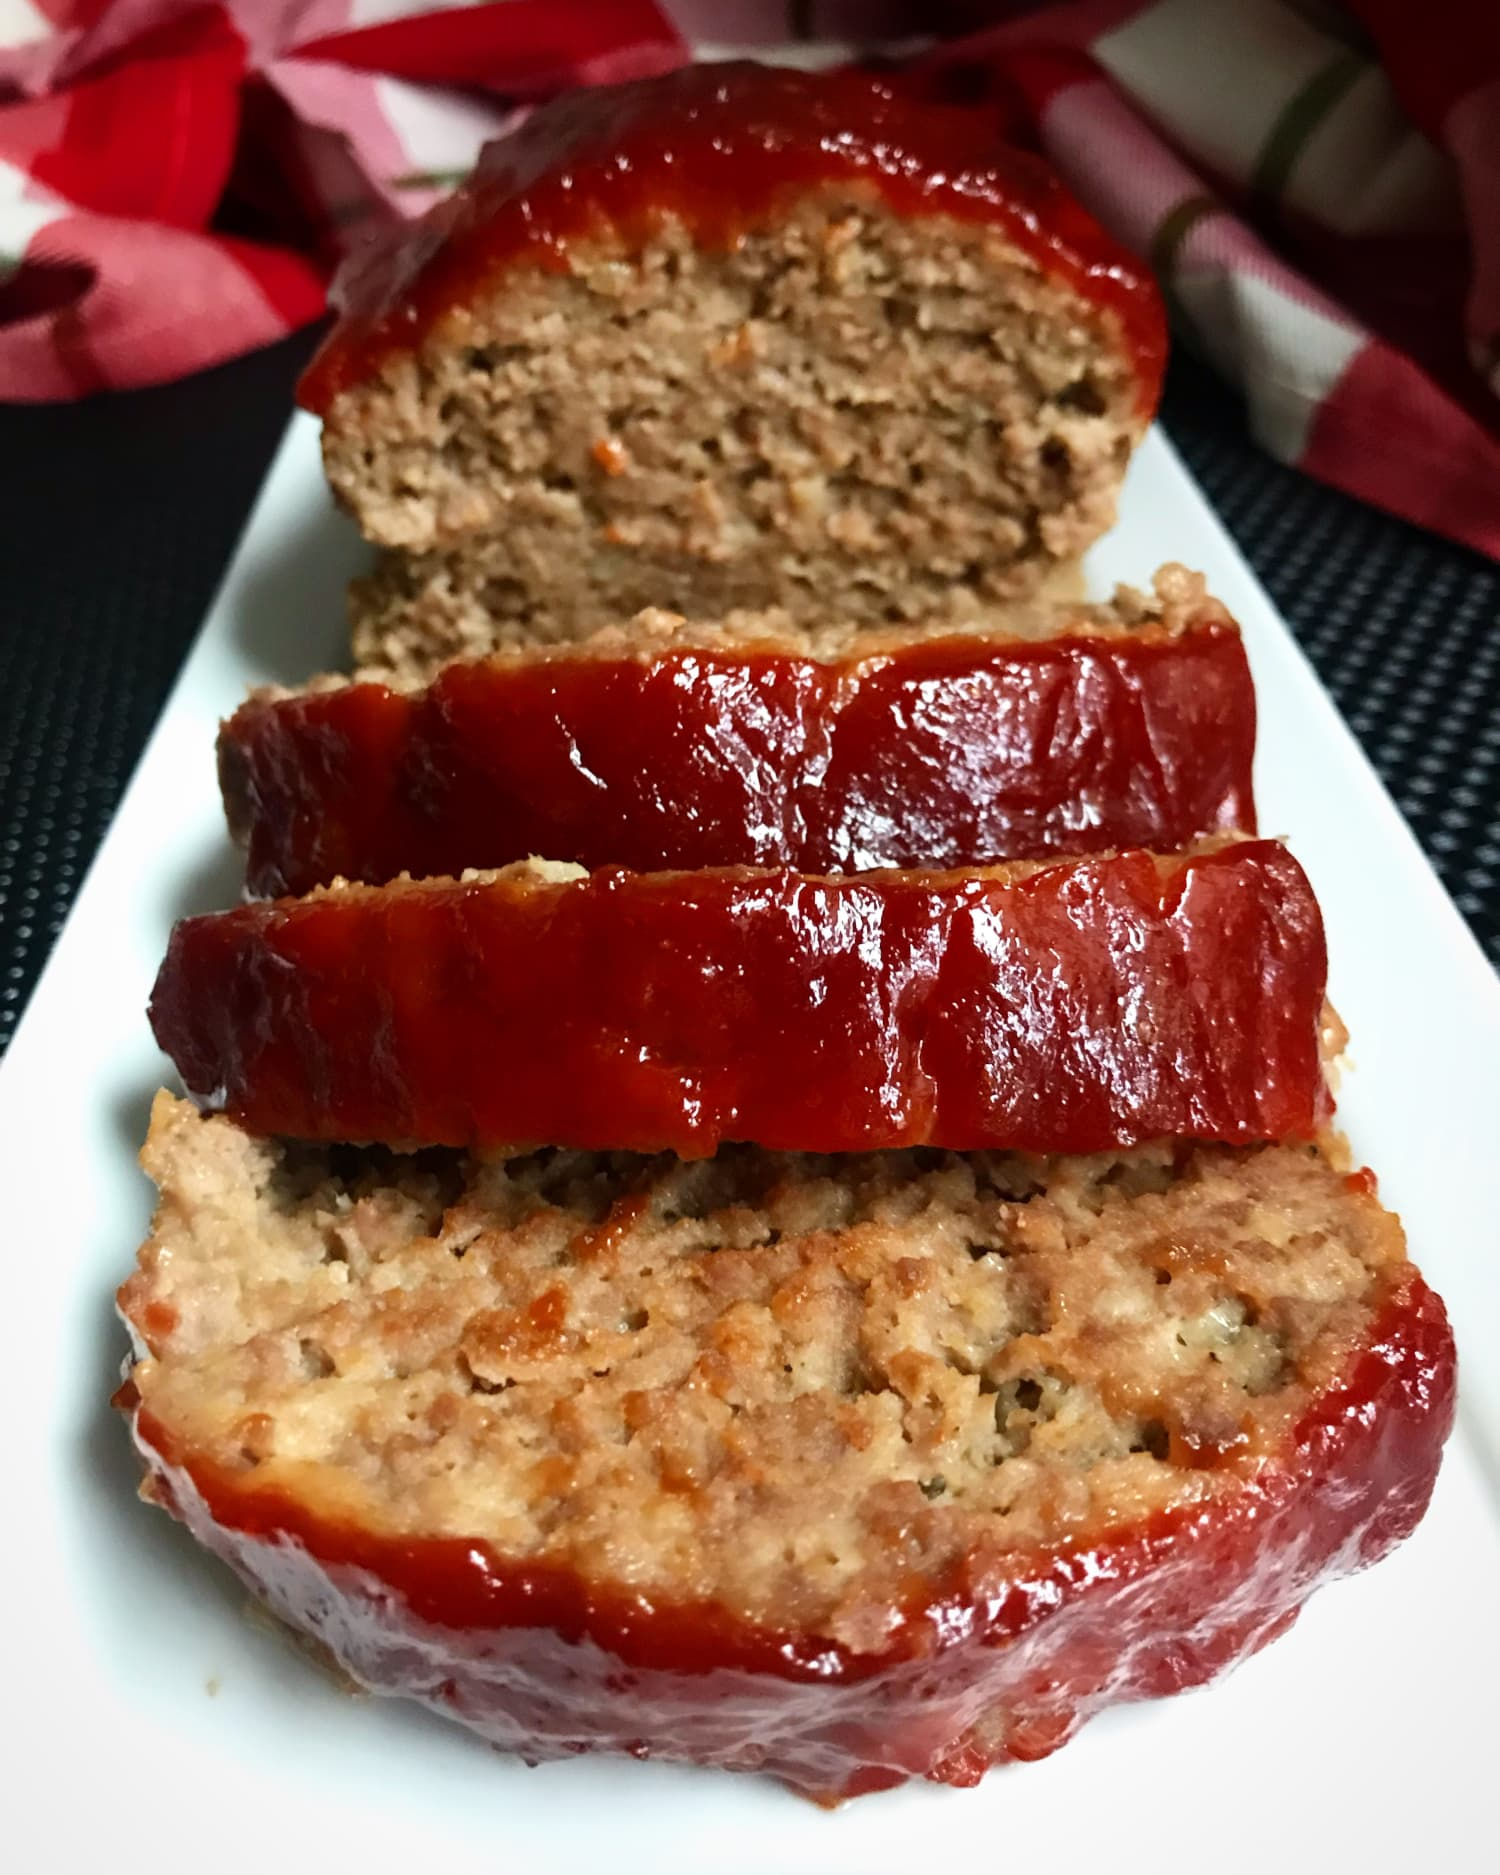 Ina's Biggest Fan Thinks His Mom's Meatloaf Is Better (and We Got the Recipe)